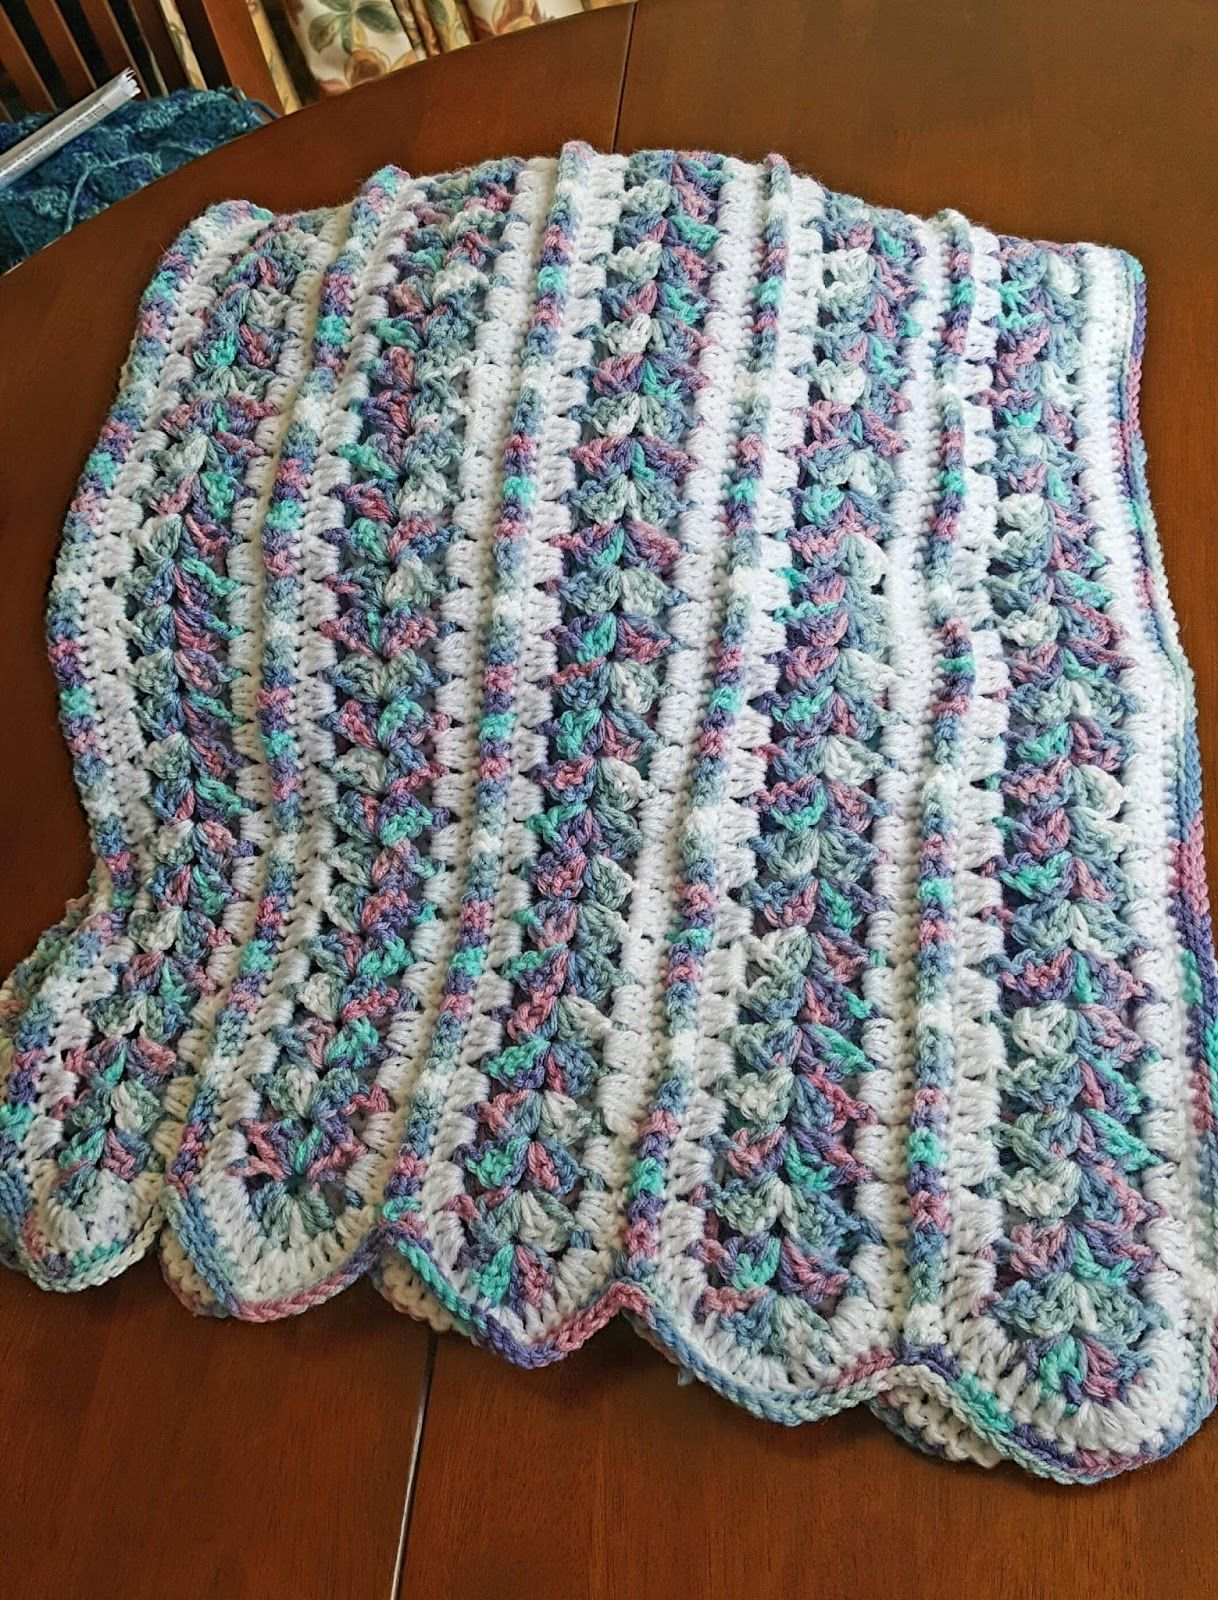 Crochet, baby blanket, mile a minute blanket, mile a minute afghan ...